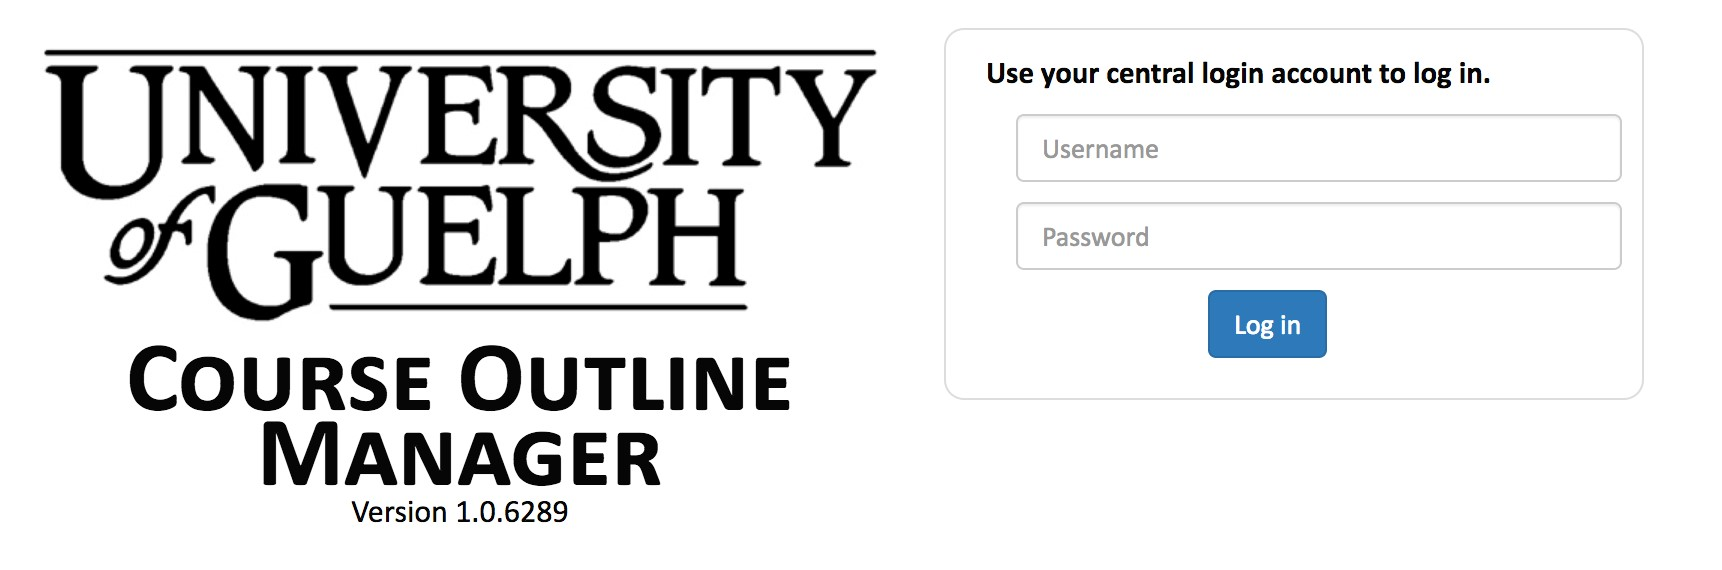 Login page for Course Outline Manager.